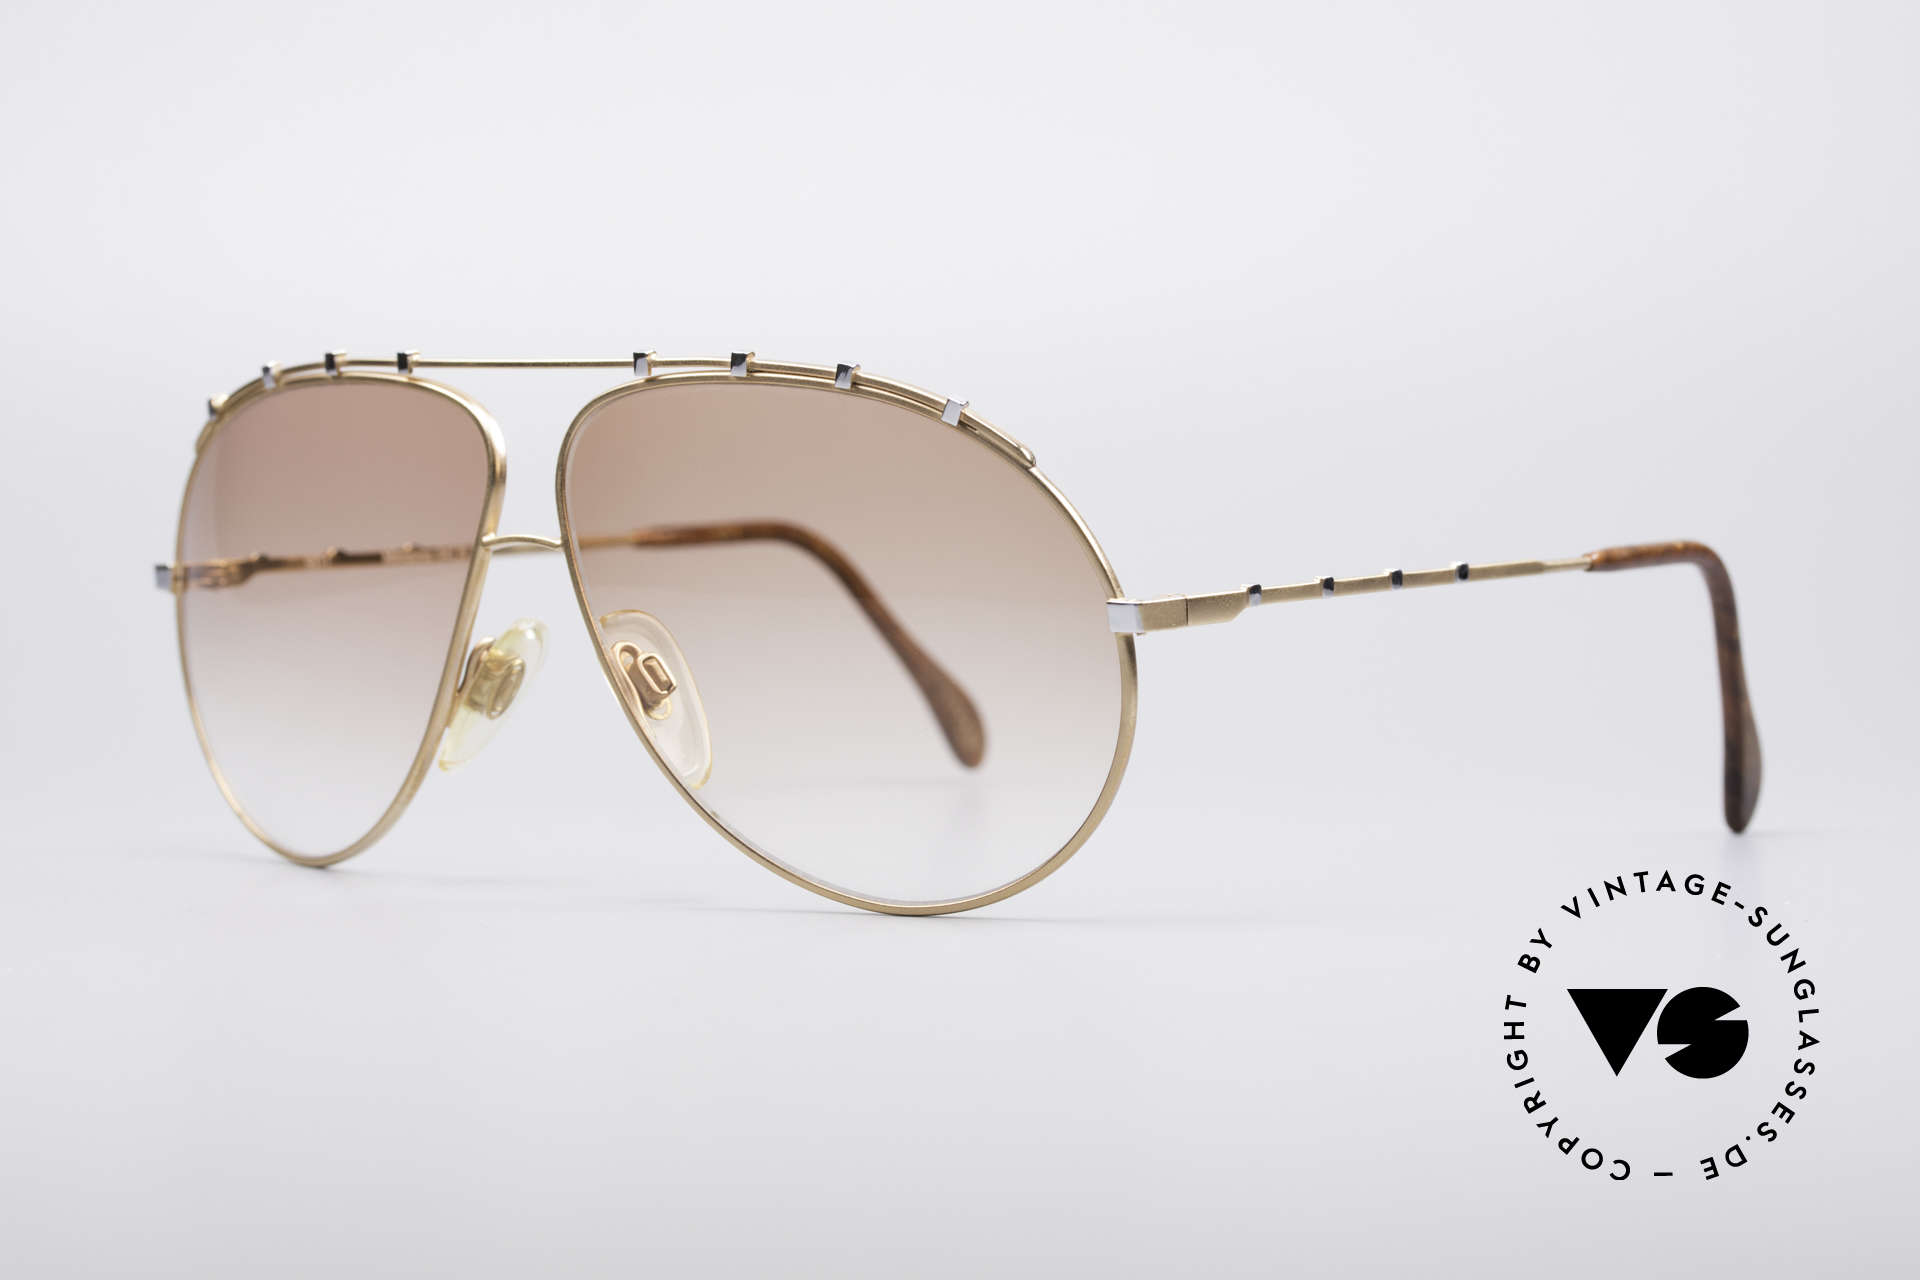 Zollitsch Marquise Rare Vintage Frame, stylish gold designer piece with small silver rivets, Made for Men